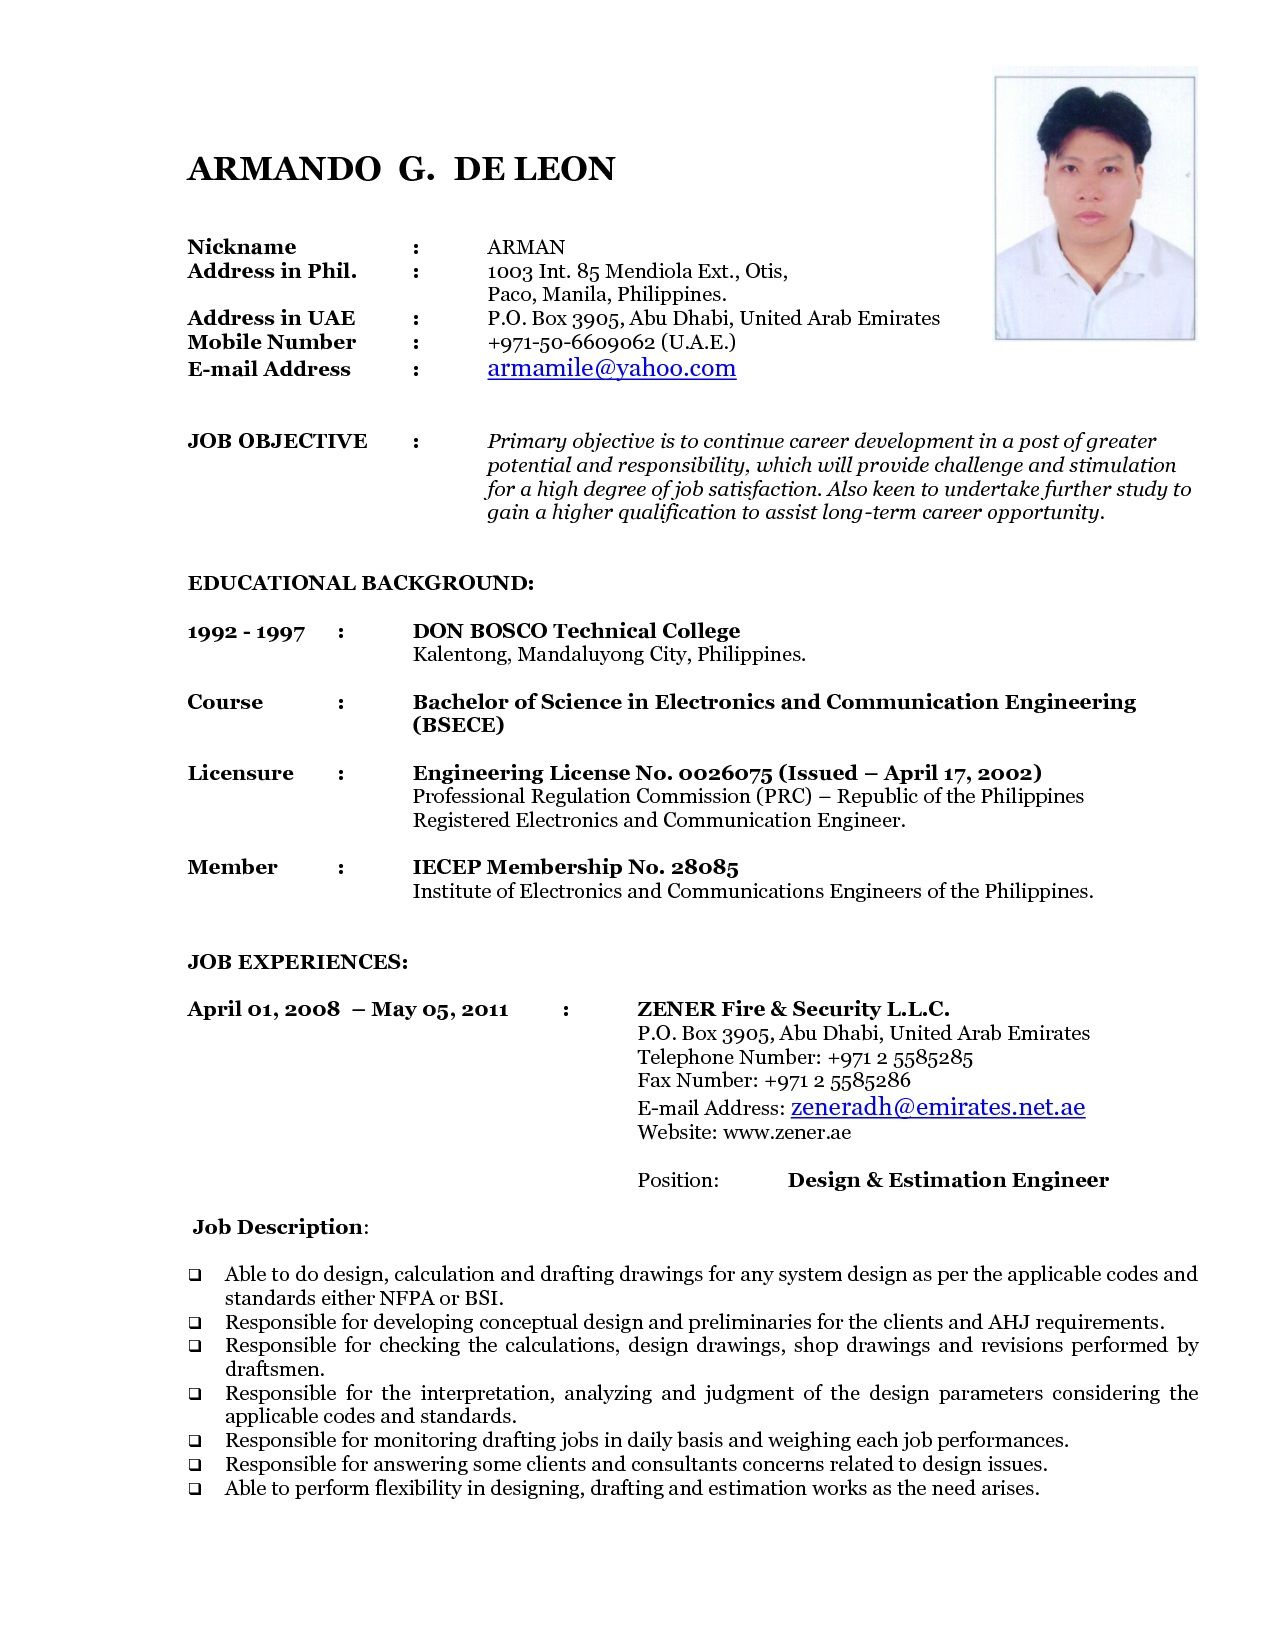 updated resume format 2015 updated resume format 2015 will give